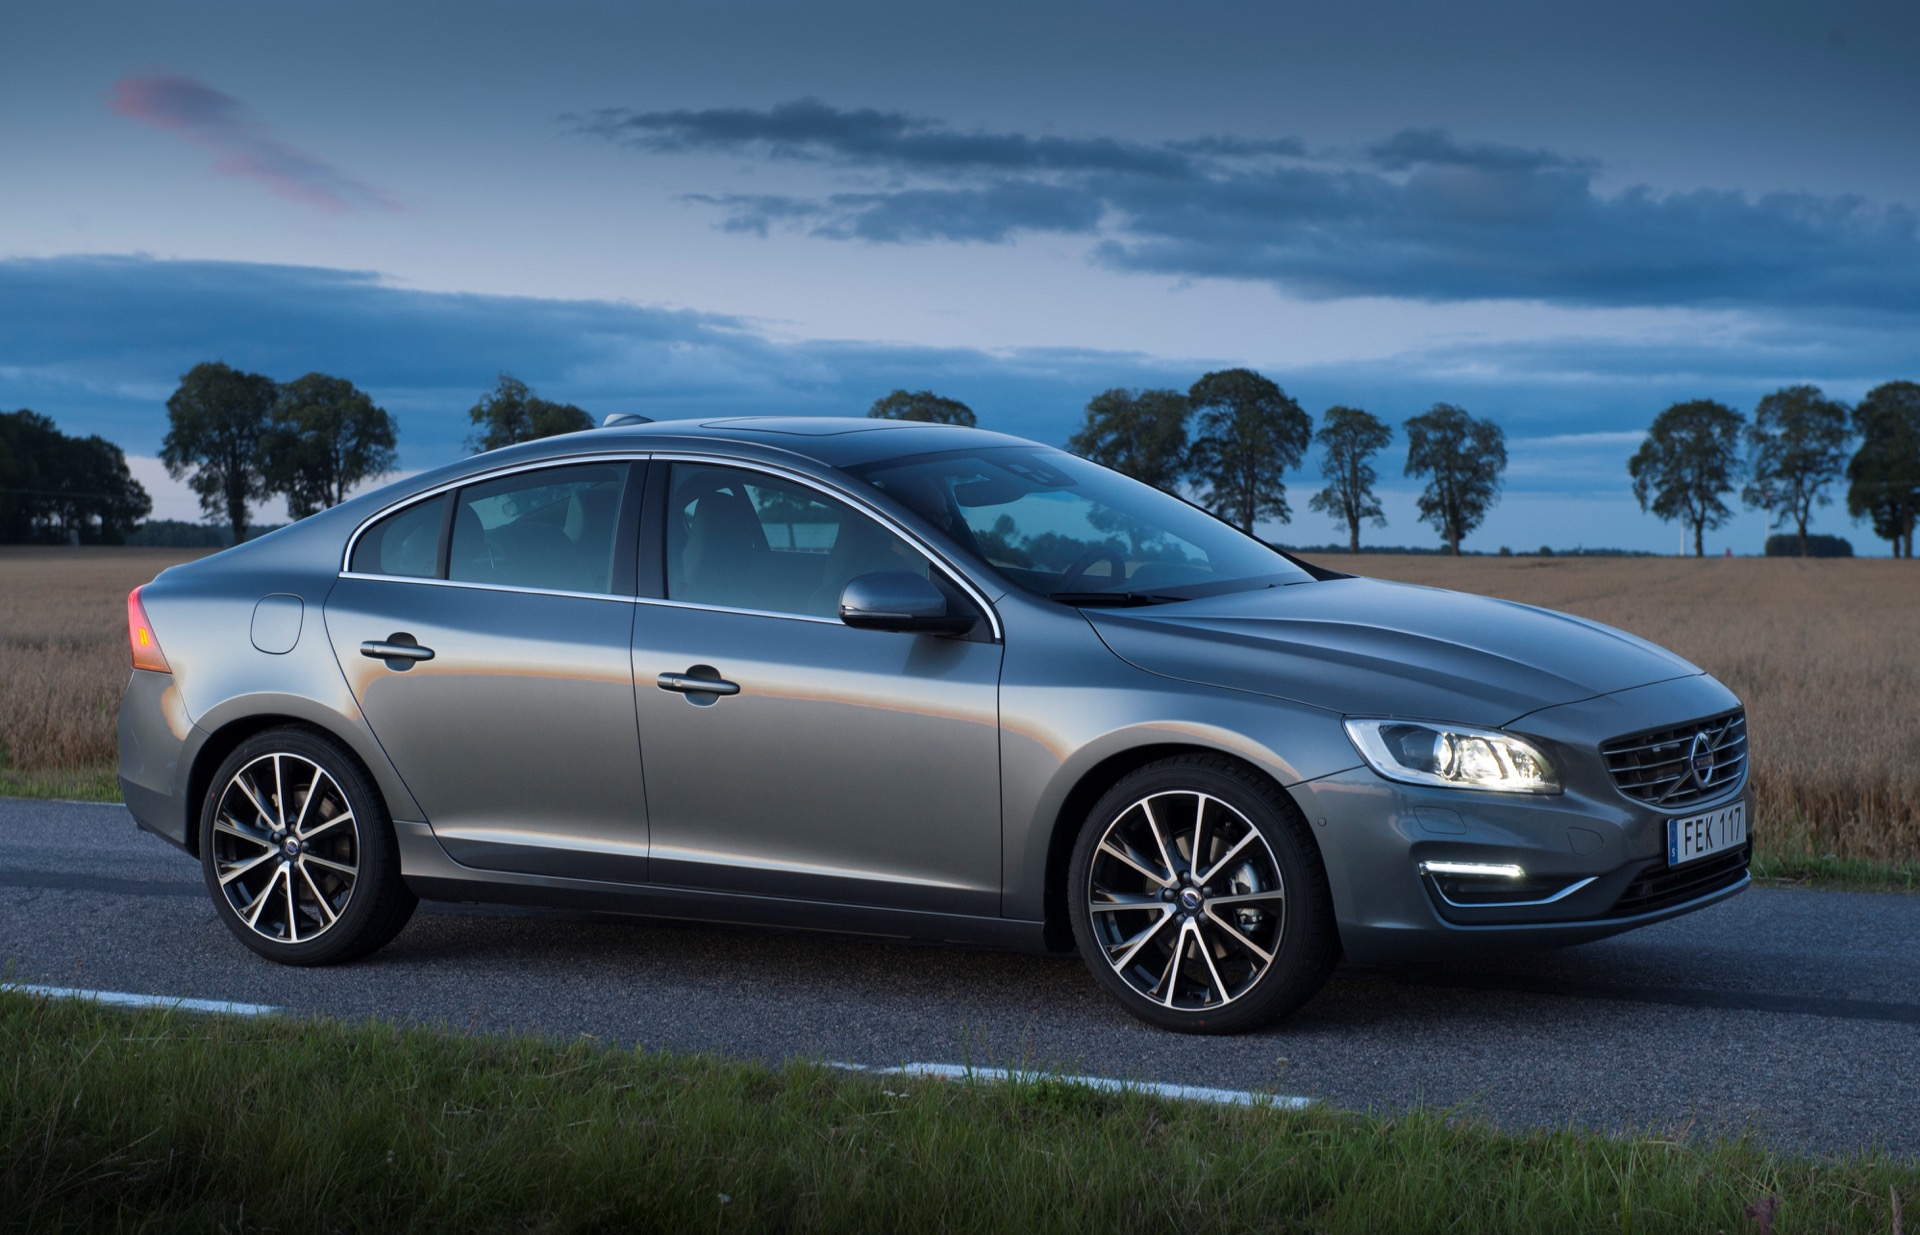 Volvo S60 Model Year 2016 -  2015, 2016, 2016 S60, Exterior, Images, S60, Volvo